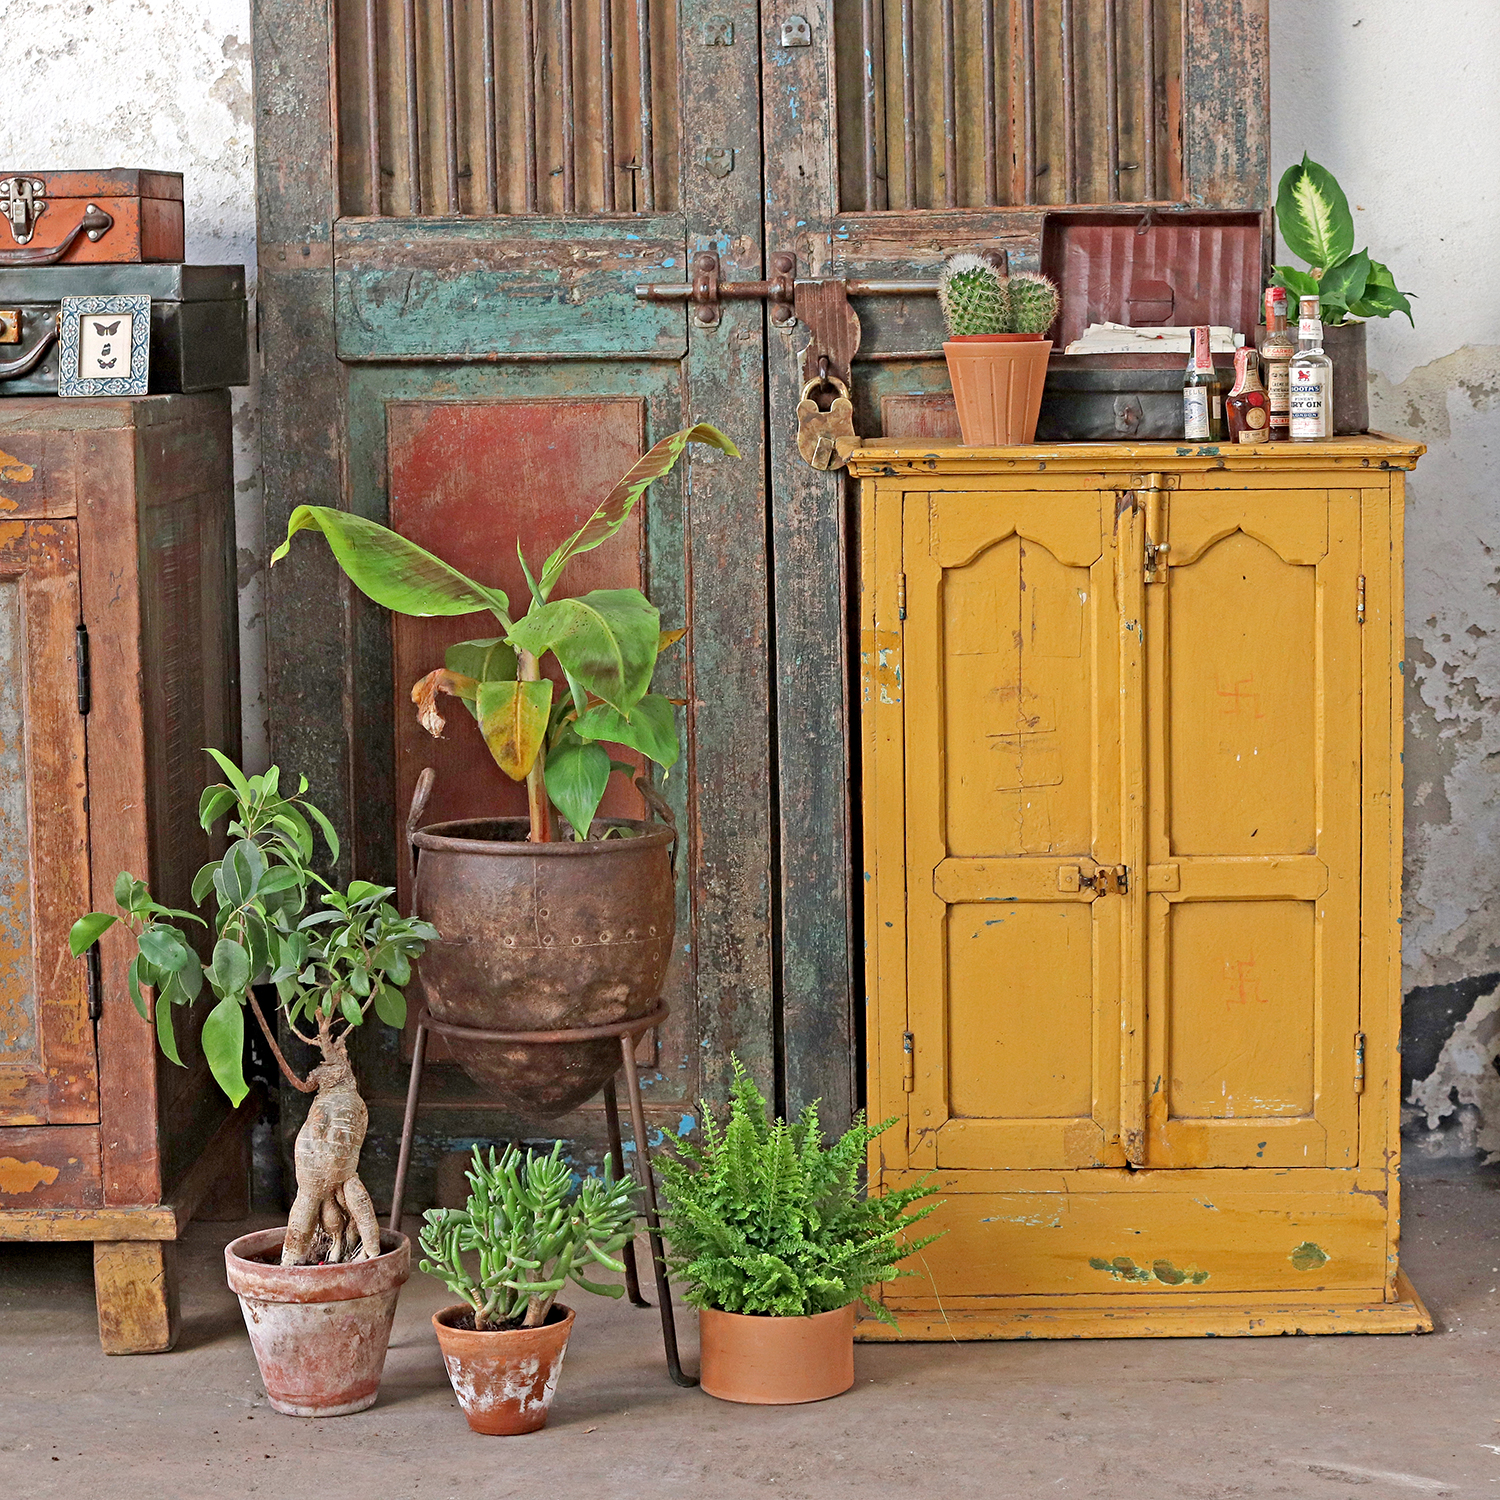 Add a Pop of Colour to your Autumn Interiors with Scaramanga's Colourful Vintage Cabinet in Mustard